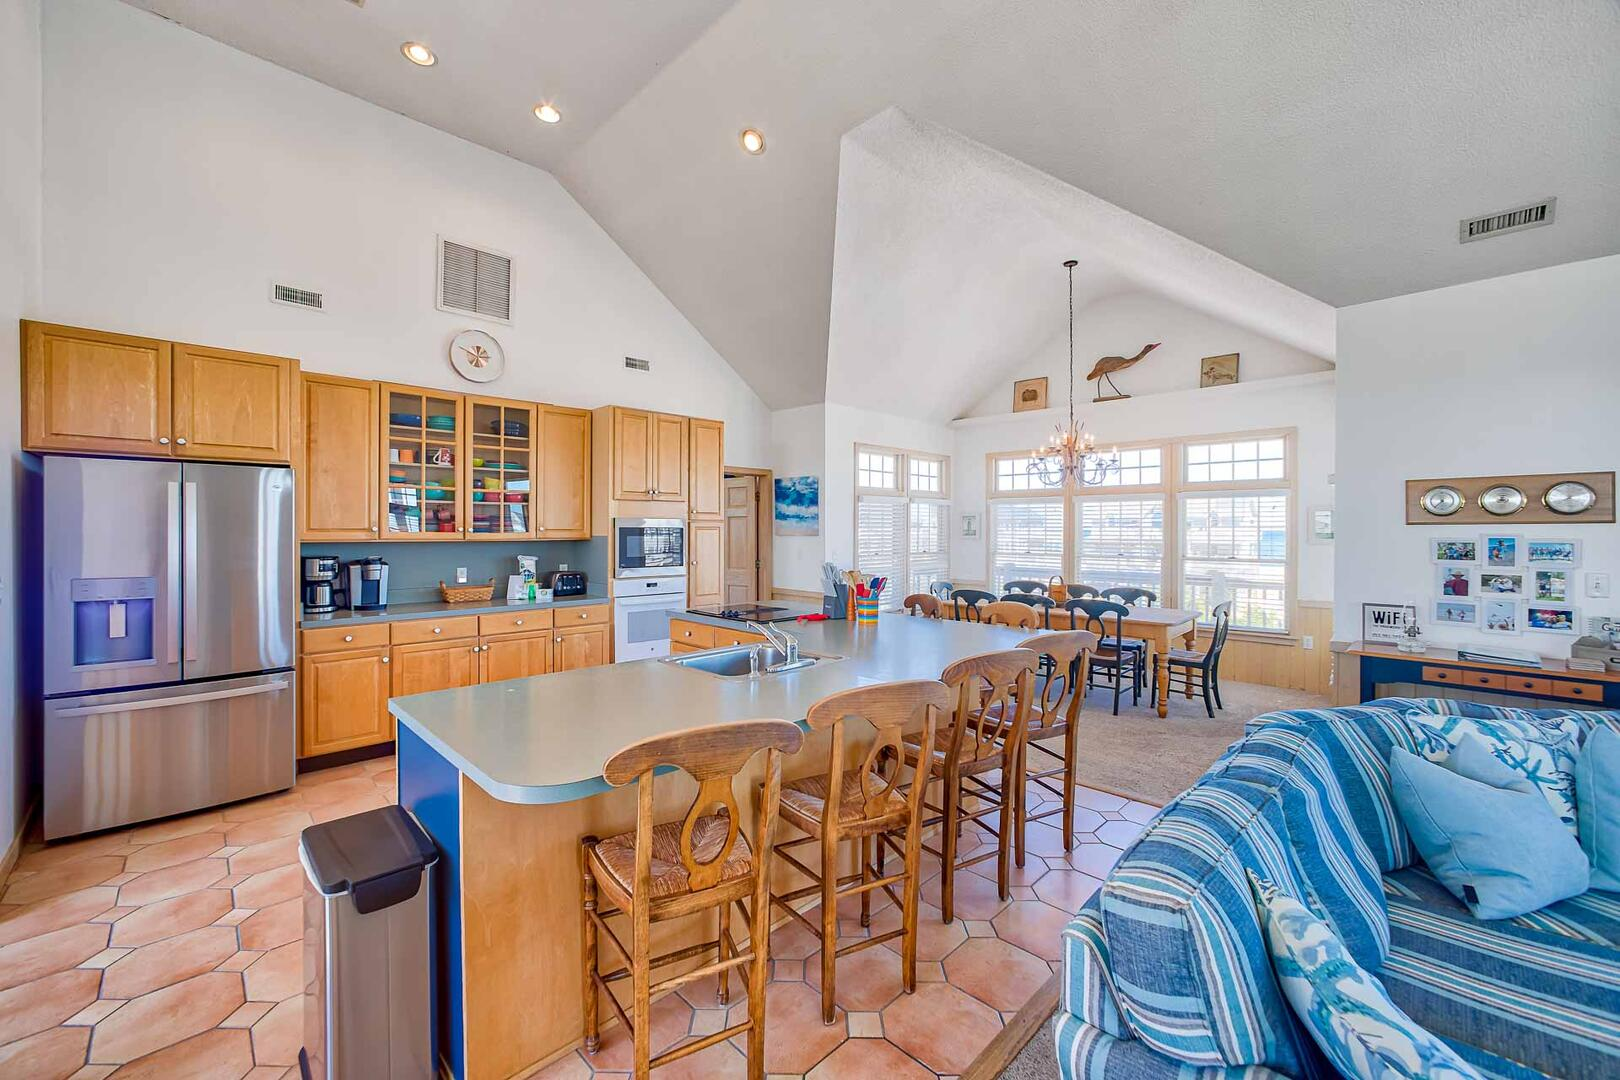 Drumstick | Hatteras Island Vacation home with EV Charging Port